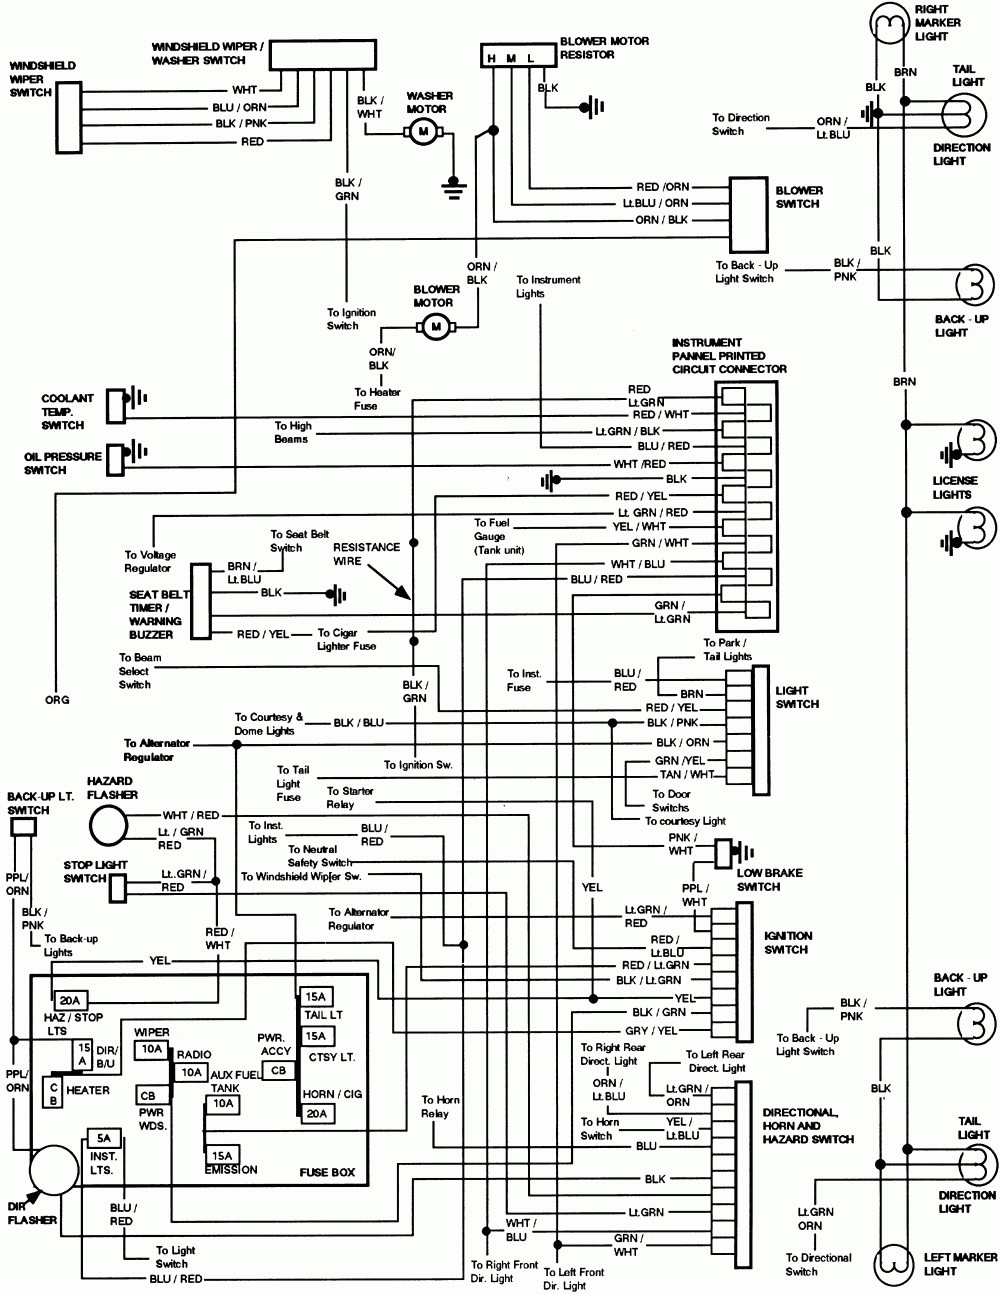 1973 vw thing steering column wiring diagram 1989 ford f 150 steering column diagram | online wiring ...